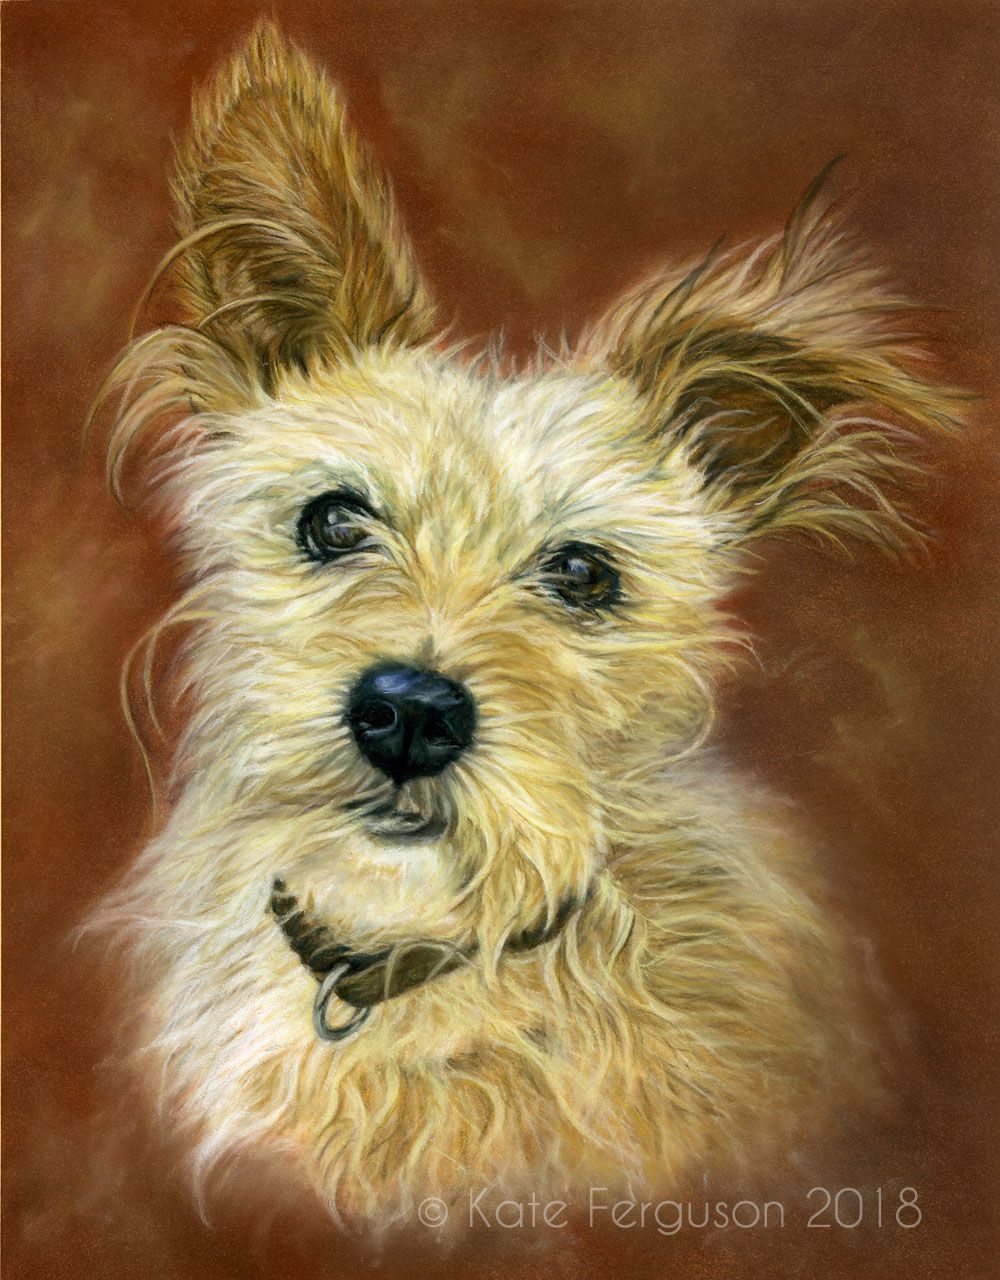 Commission in pastels - Scrappy